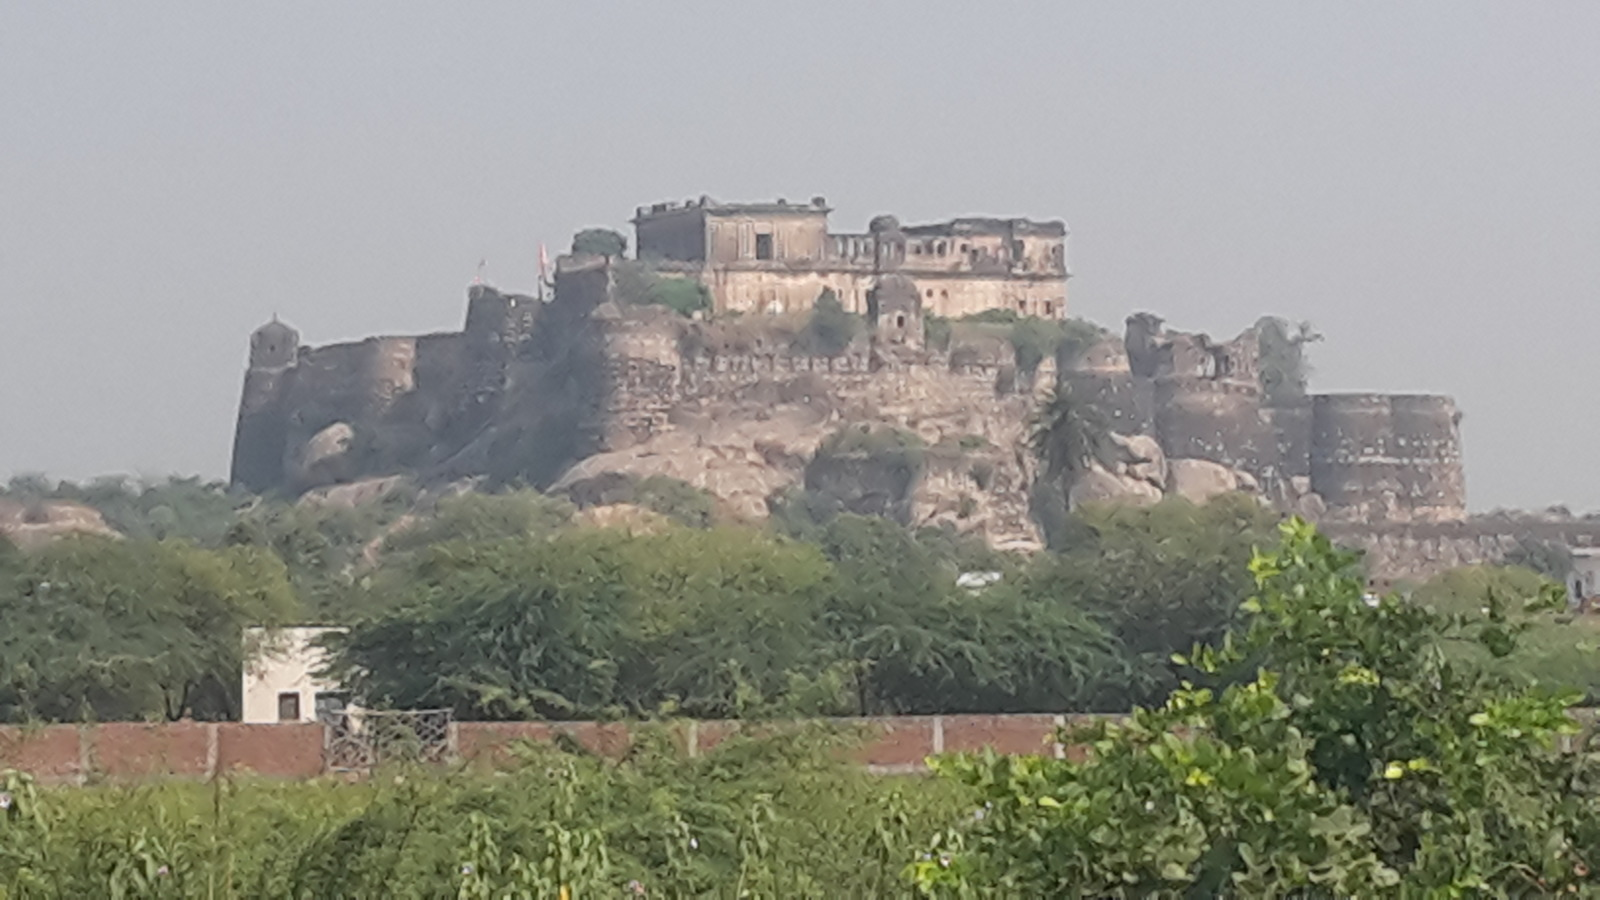 A fort at Amargarh.